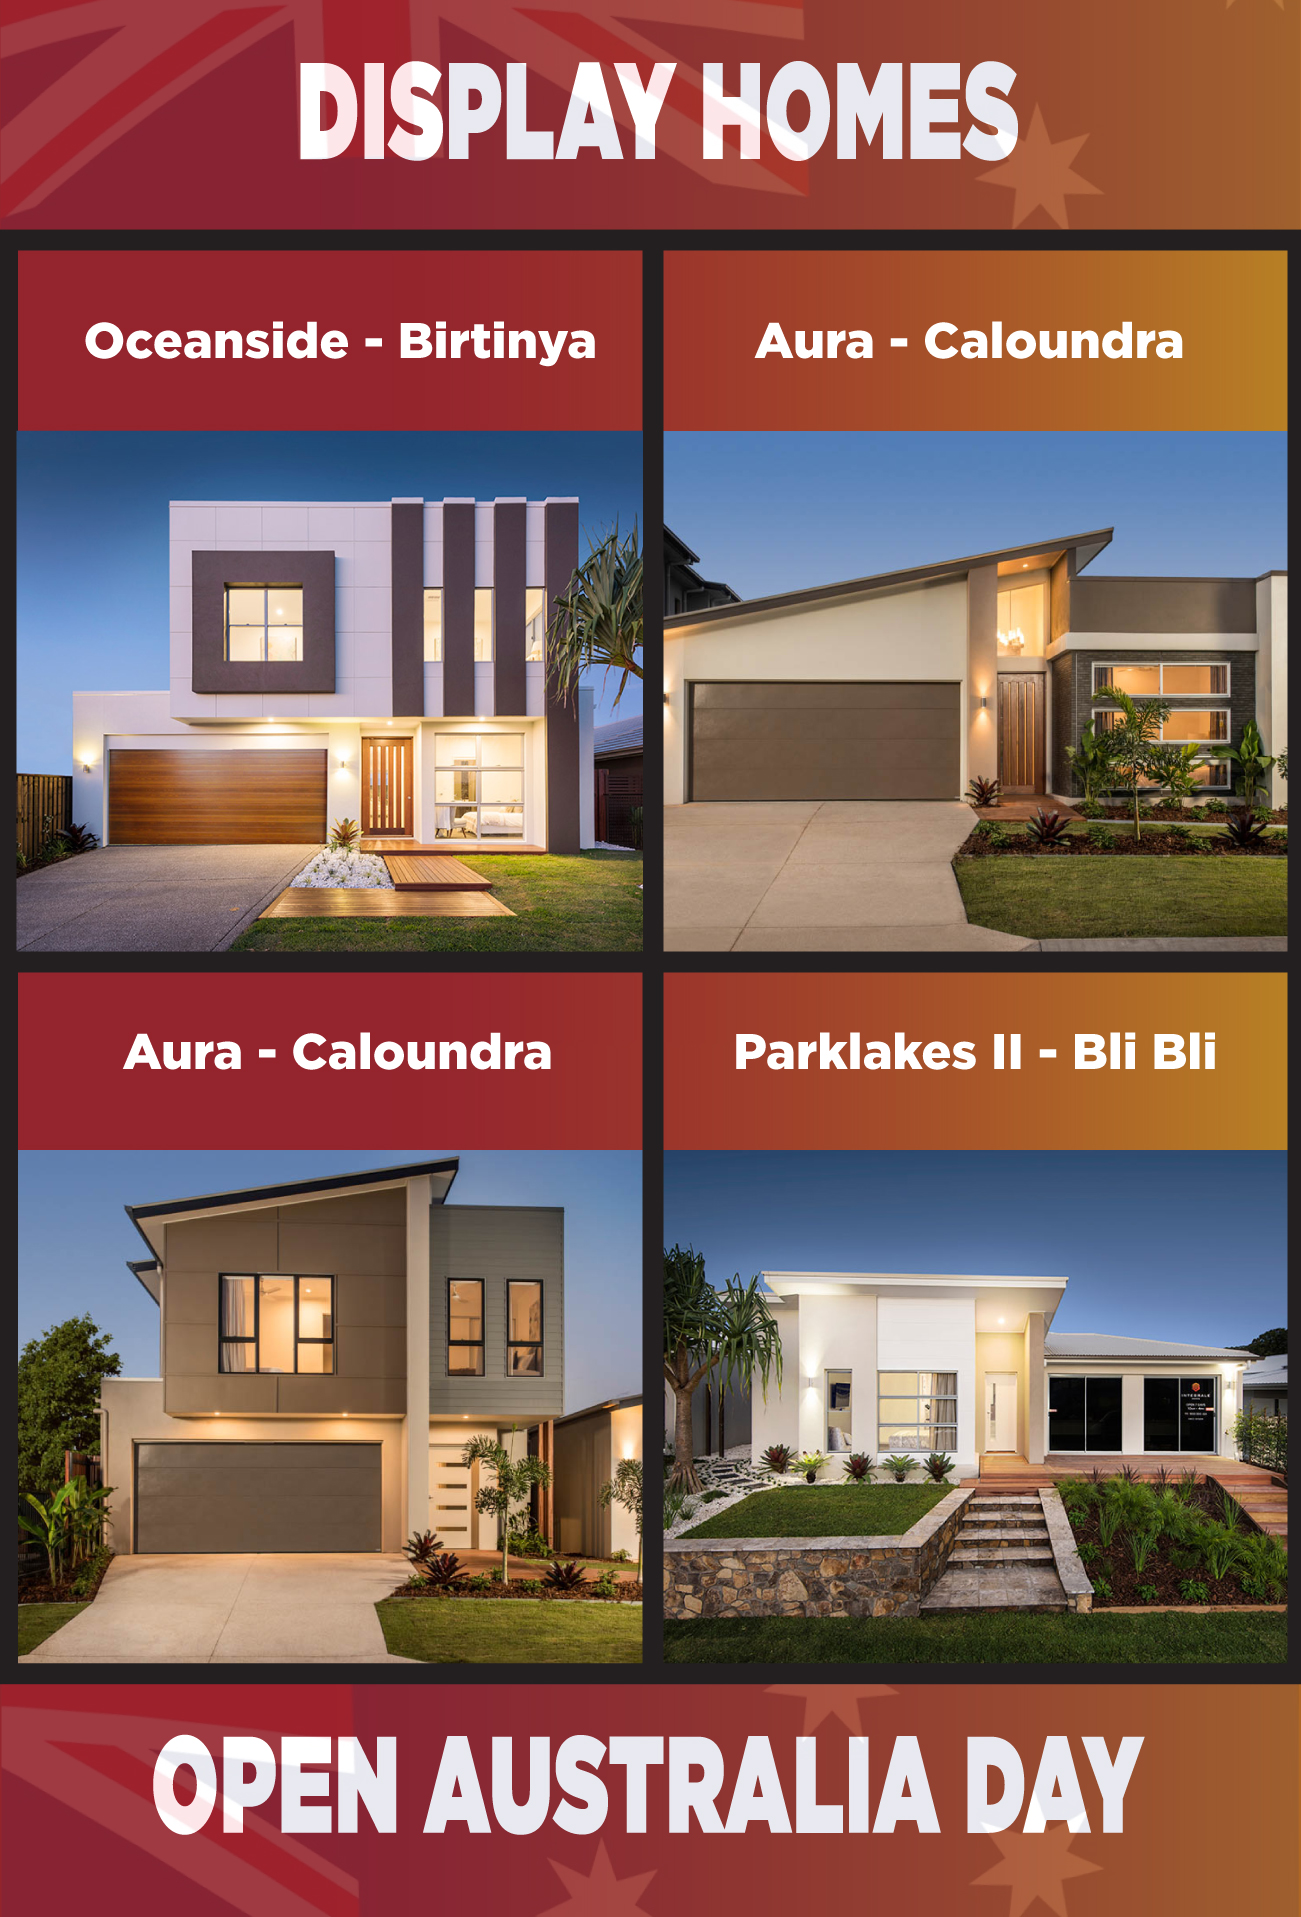 australia-day-display-homes-open-2 DISPLAY HOMES OPEN - AUSTRALIA DAY JAN 2018